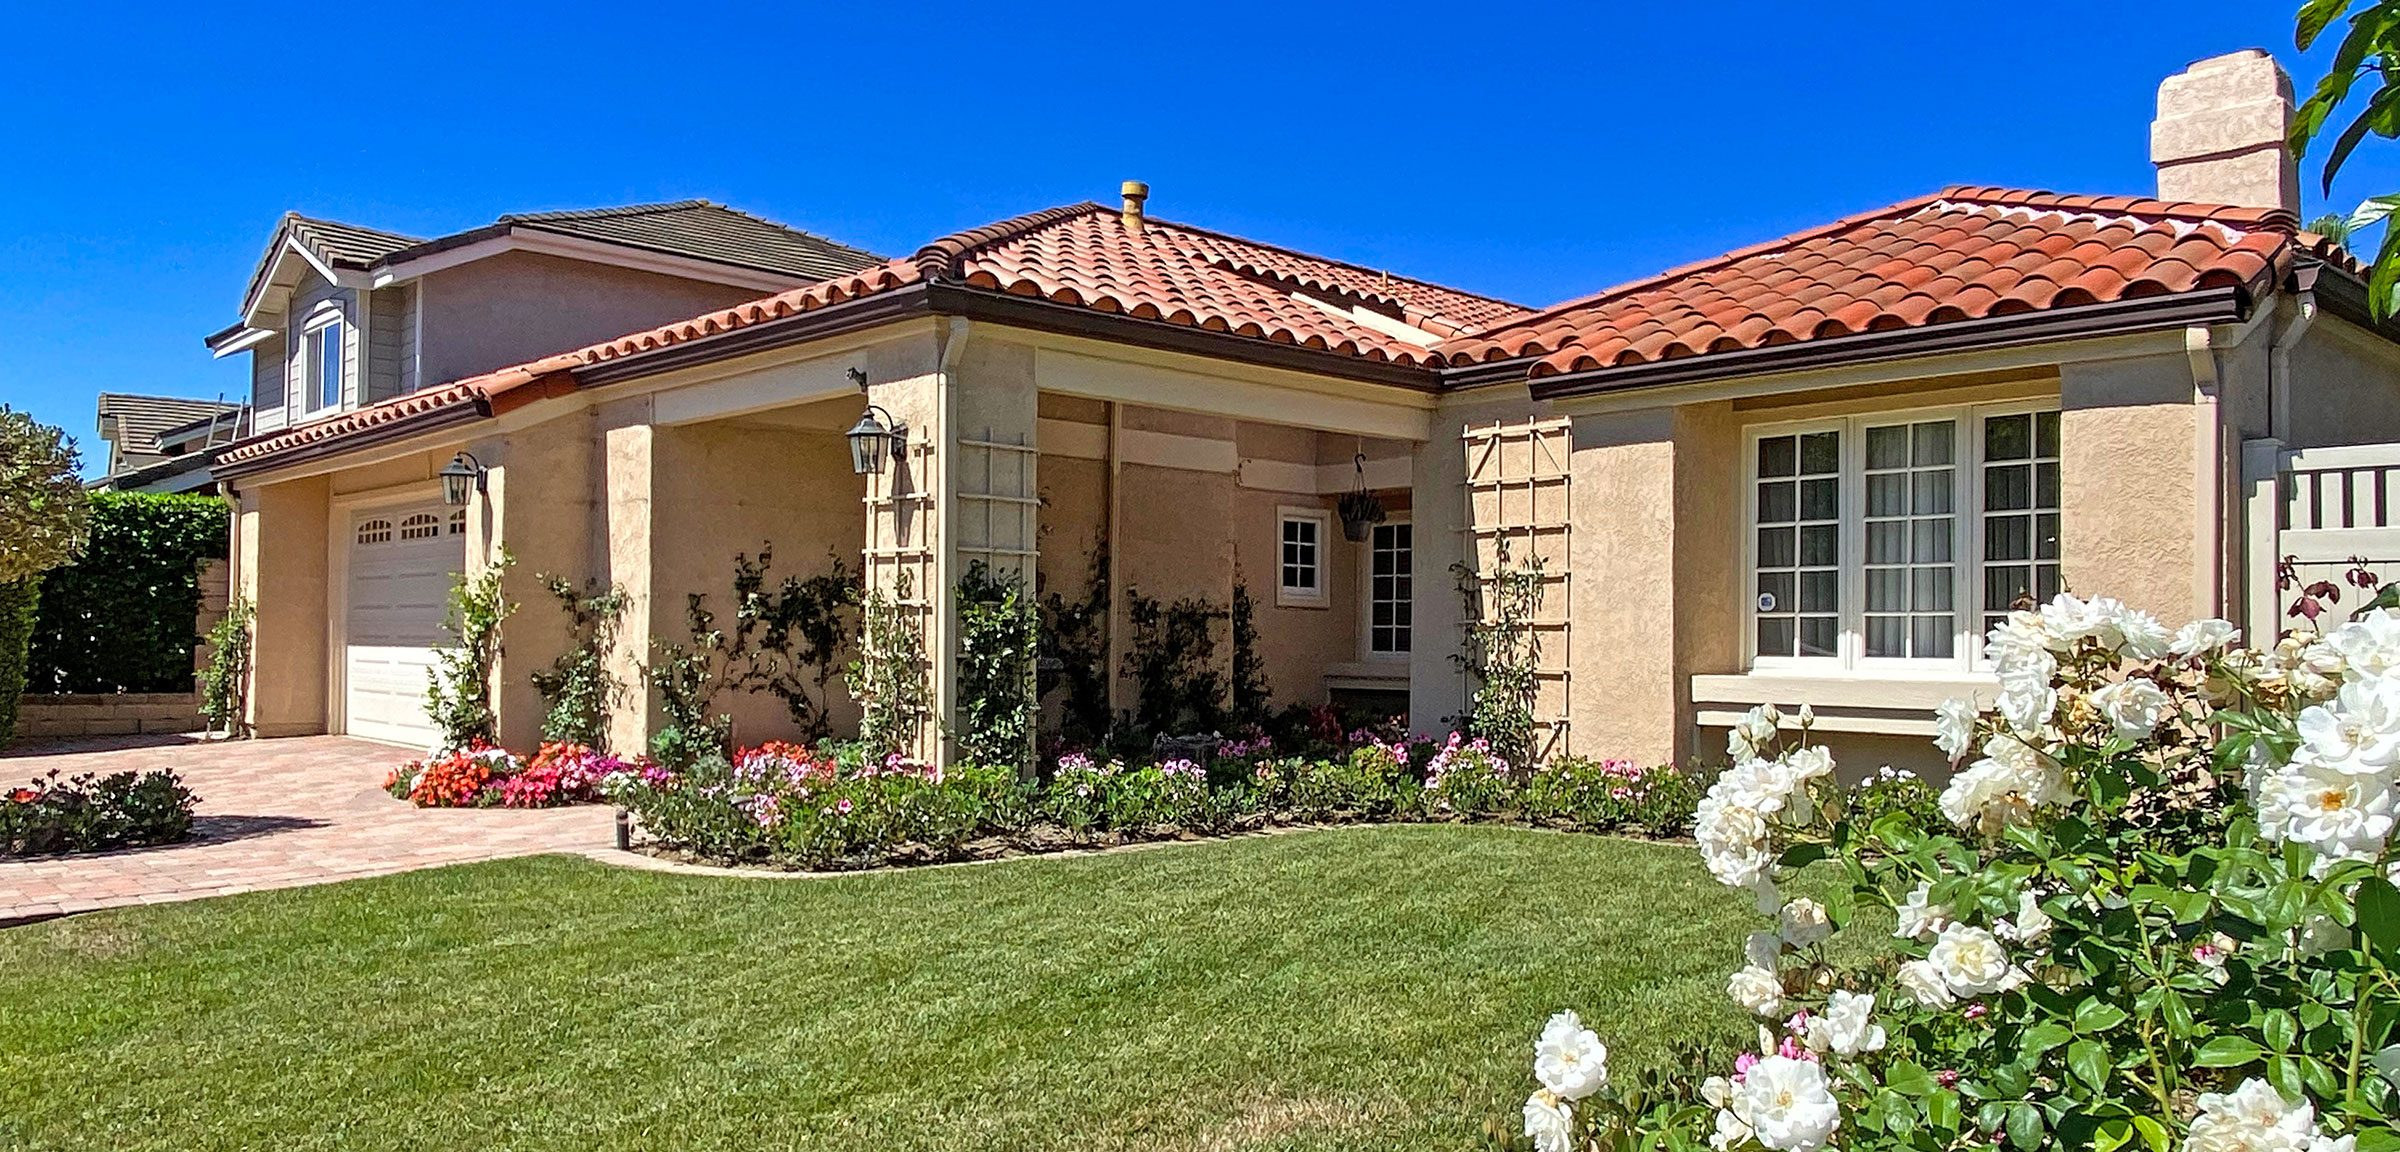 Single Level Homes Over 55 in Mission Viejo Casta del Sol and Palmia